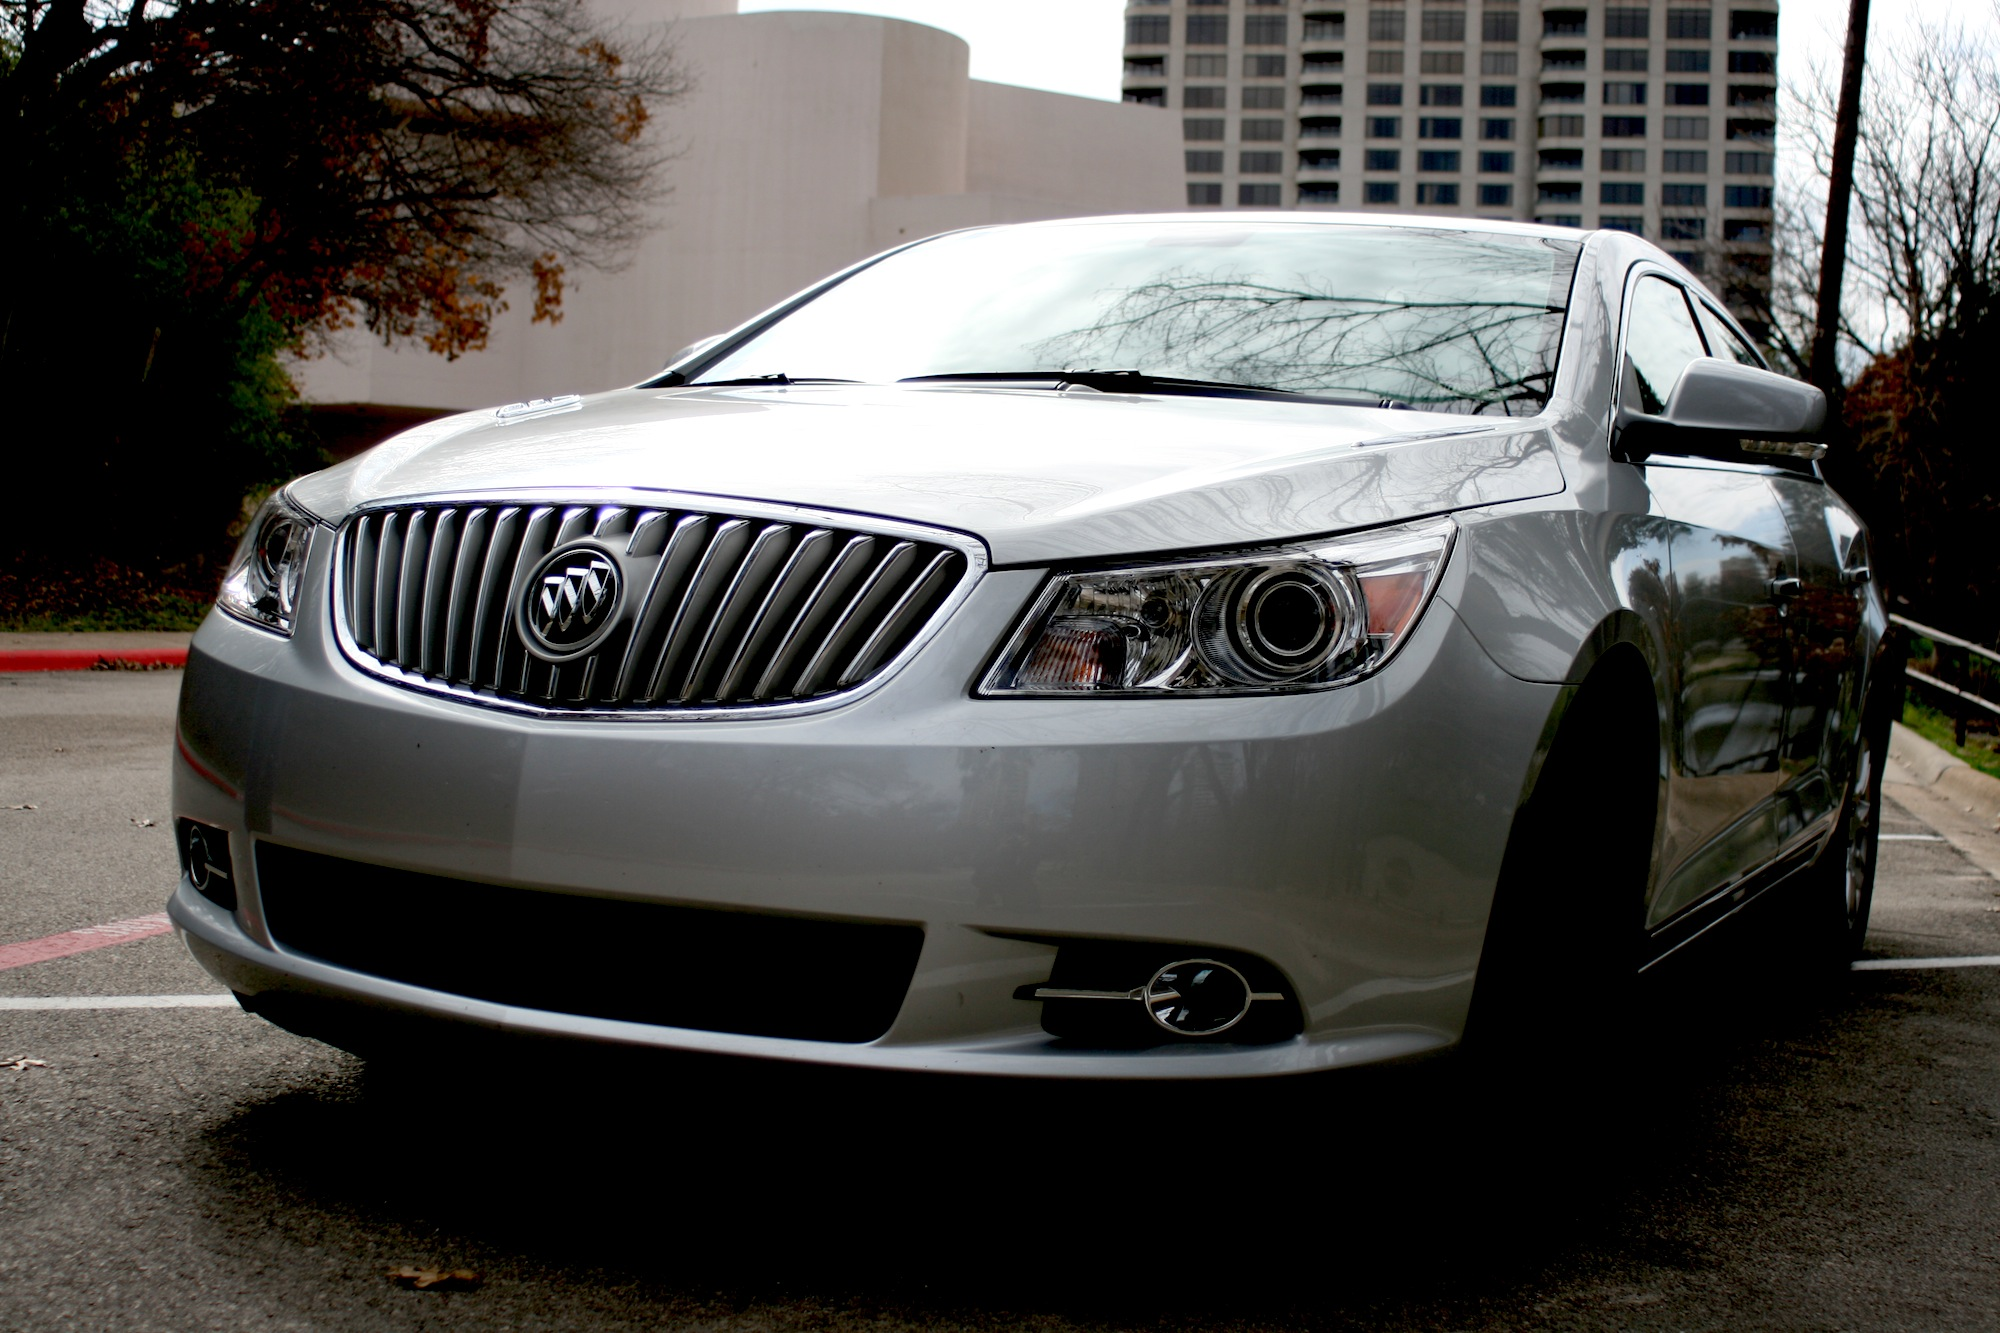 Video Review Of The 2012 Buick Lacrosse With Eassist Txgarage